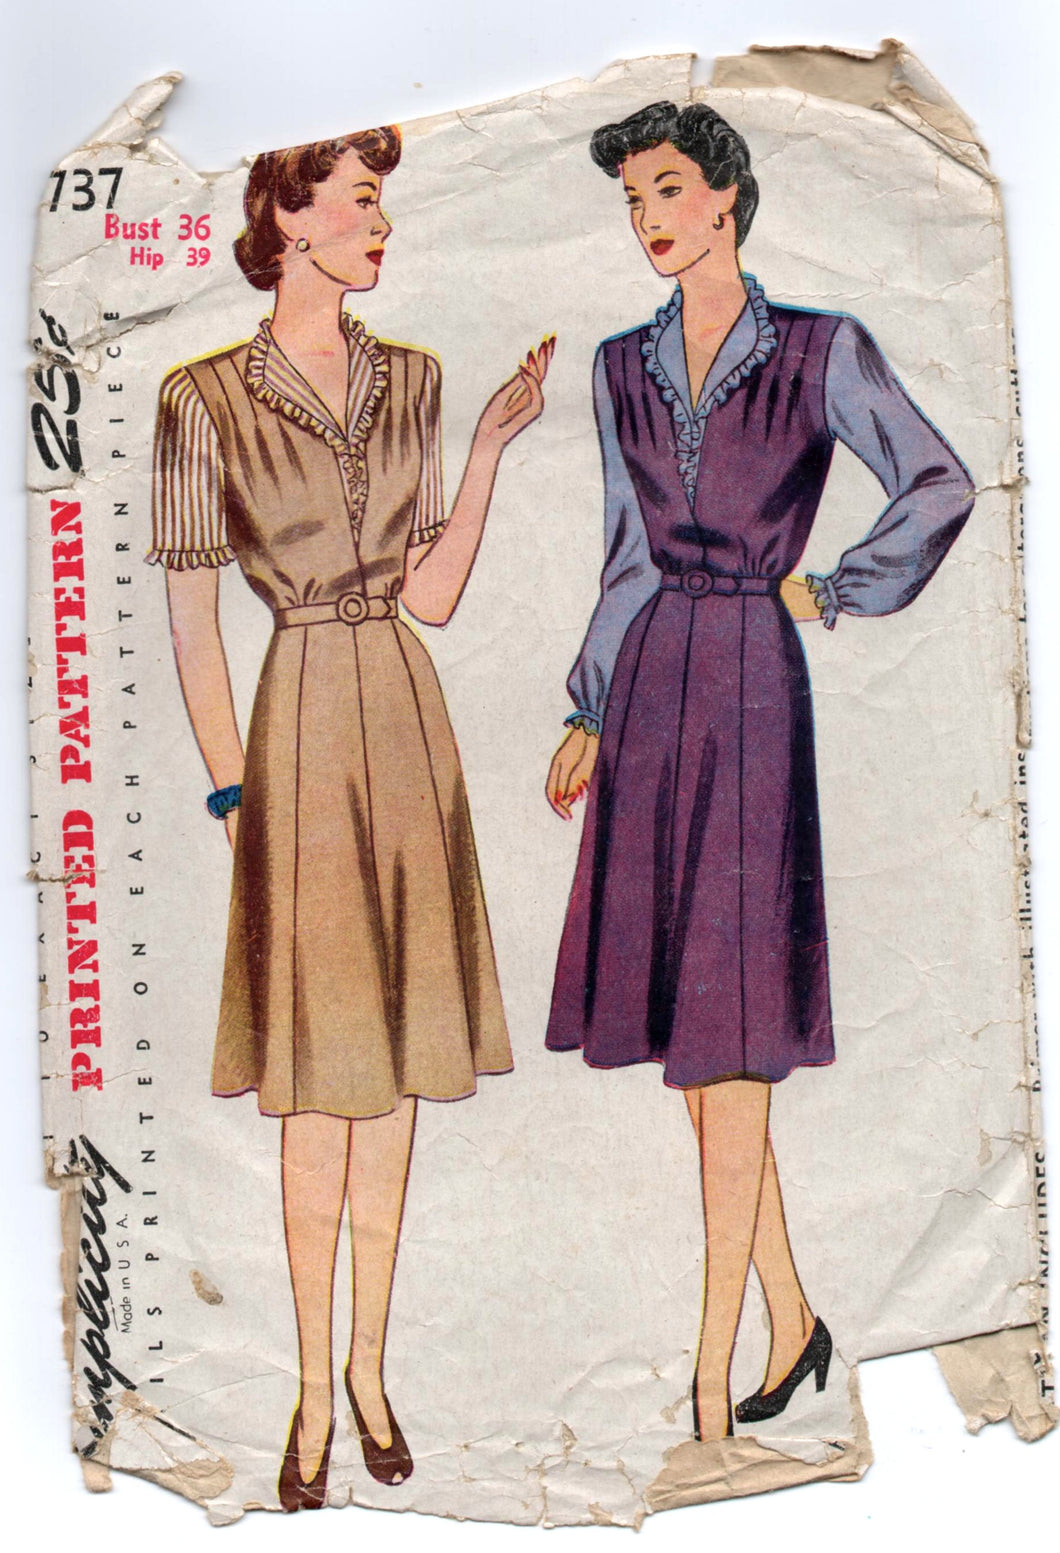 1940's Simplicity Dress and Blouse Pattern - Bust 36